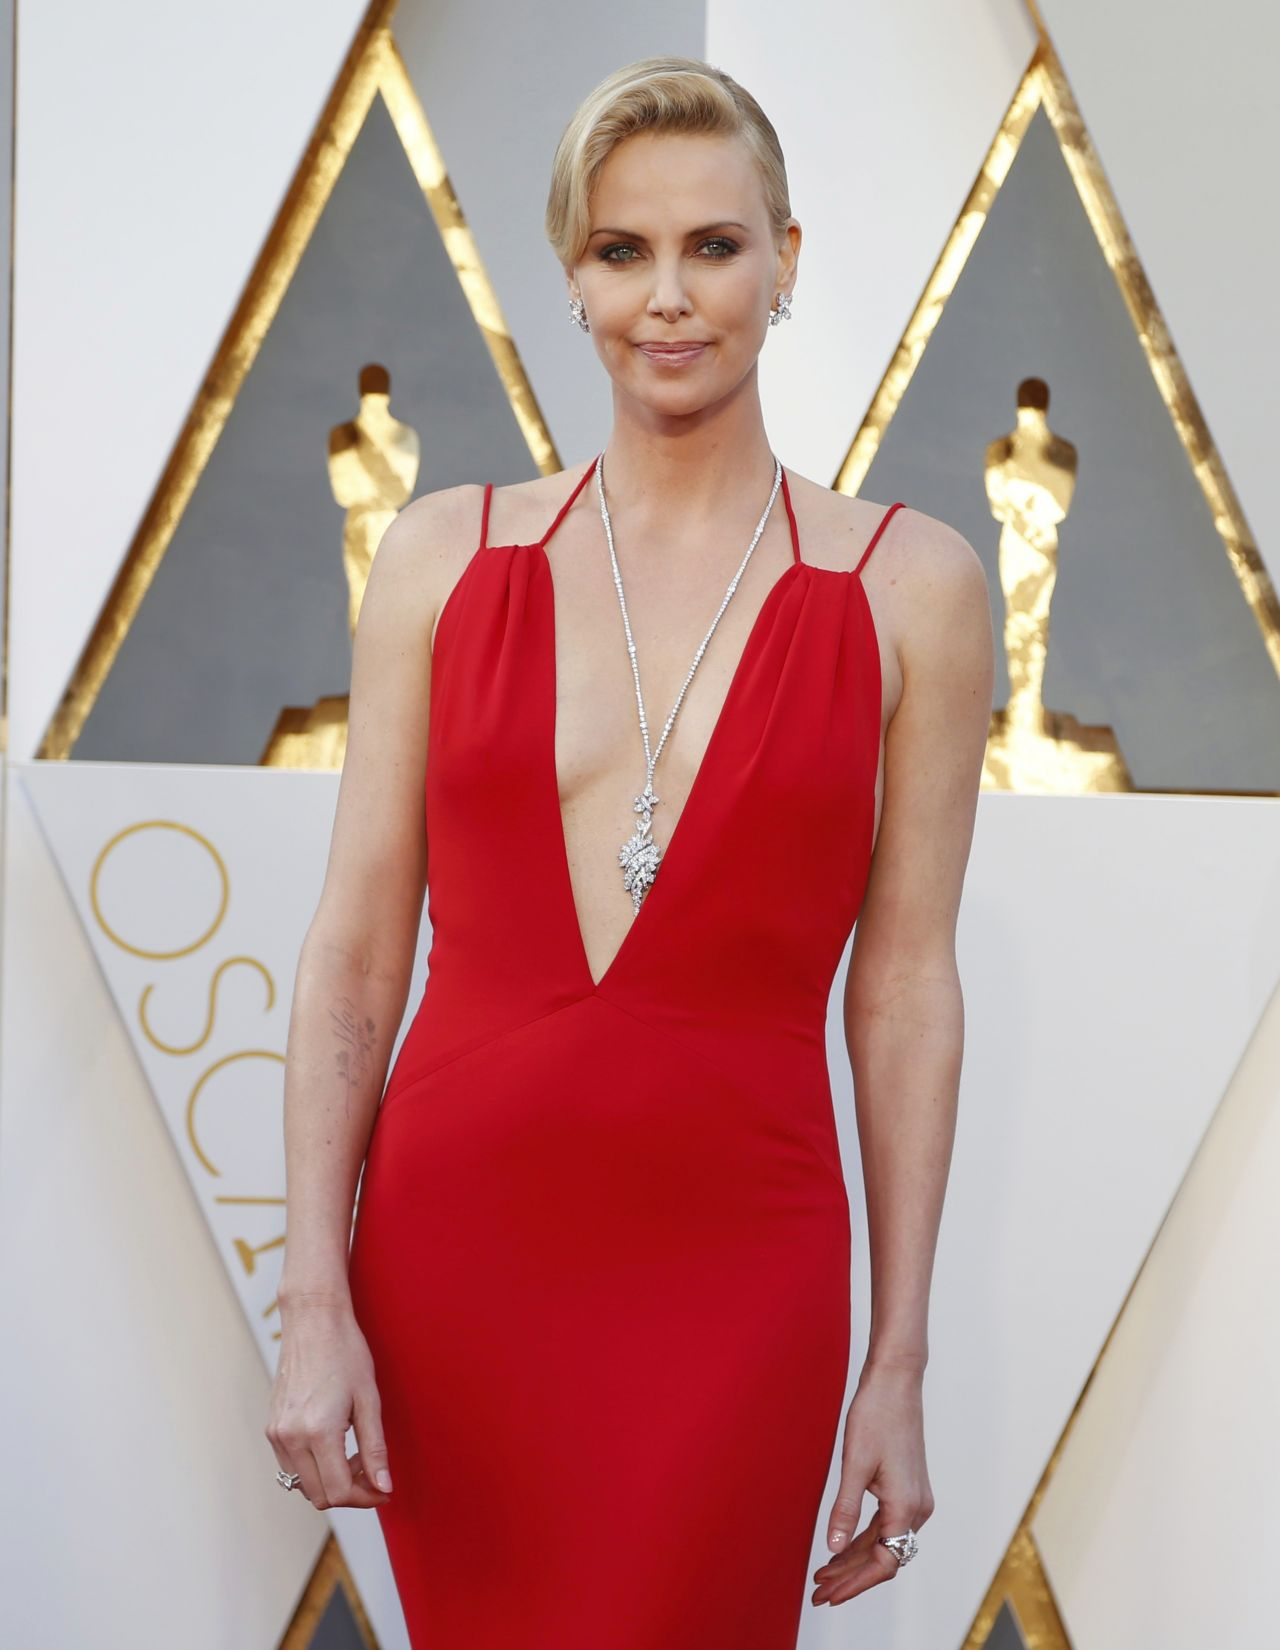 Charlize Theron – Oscars 2016 in Hollywood, CA 2/28/2016 Charlize Theron